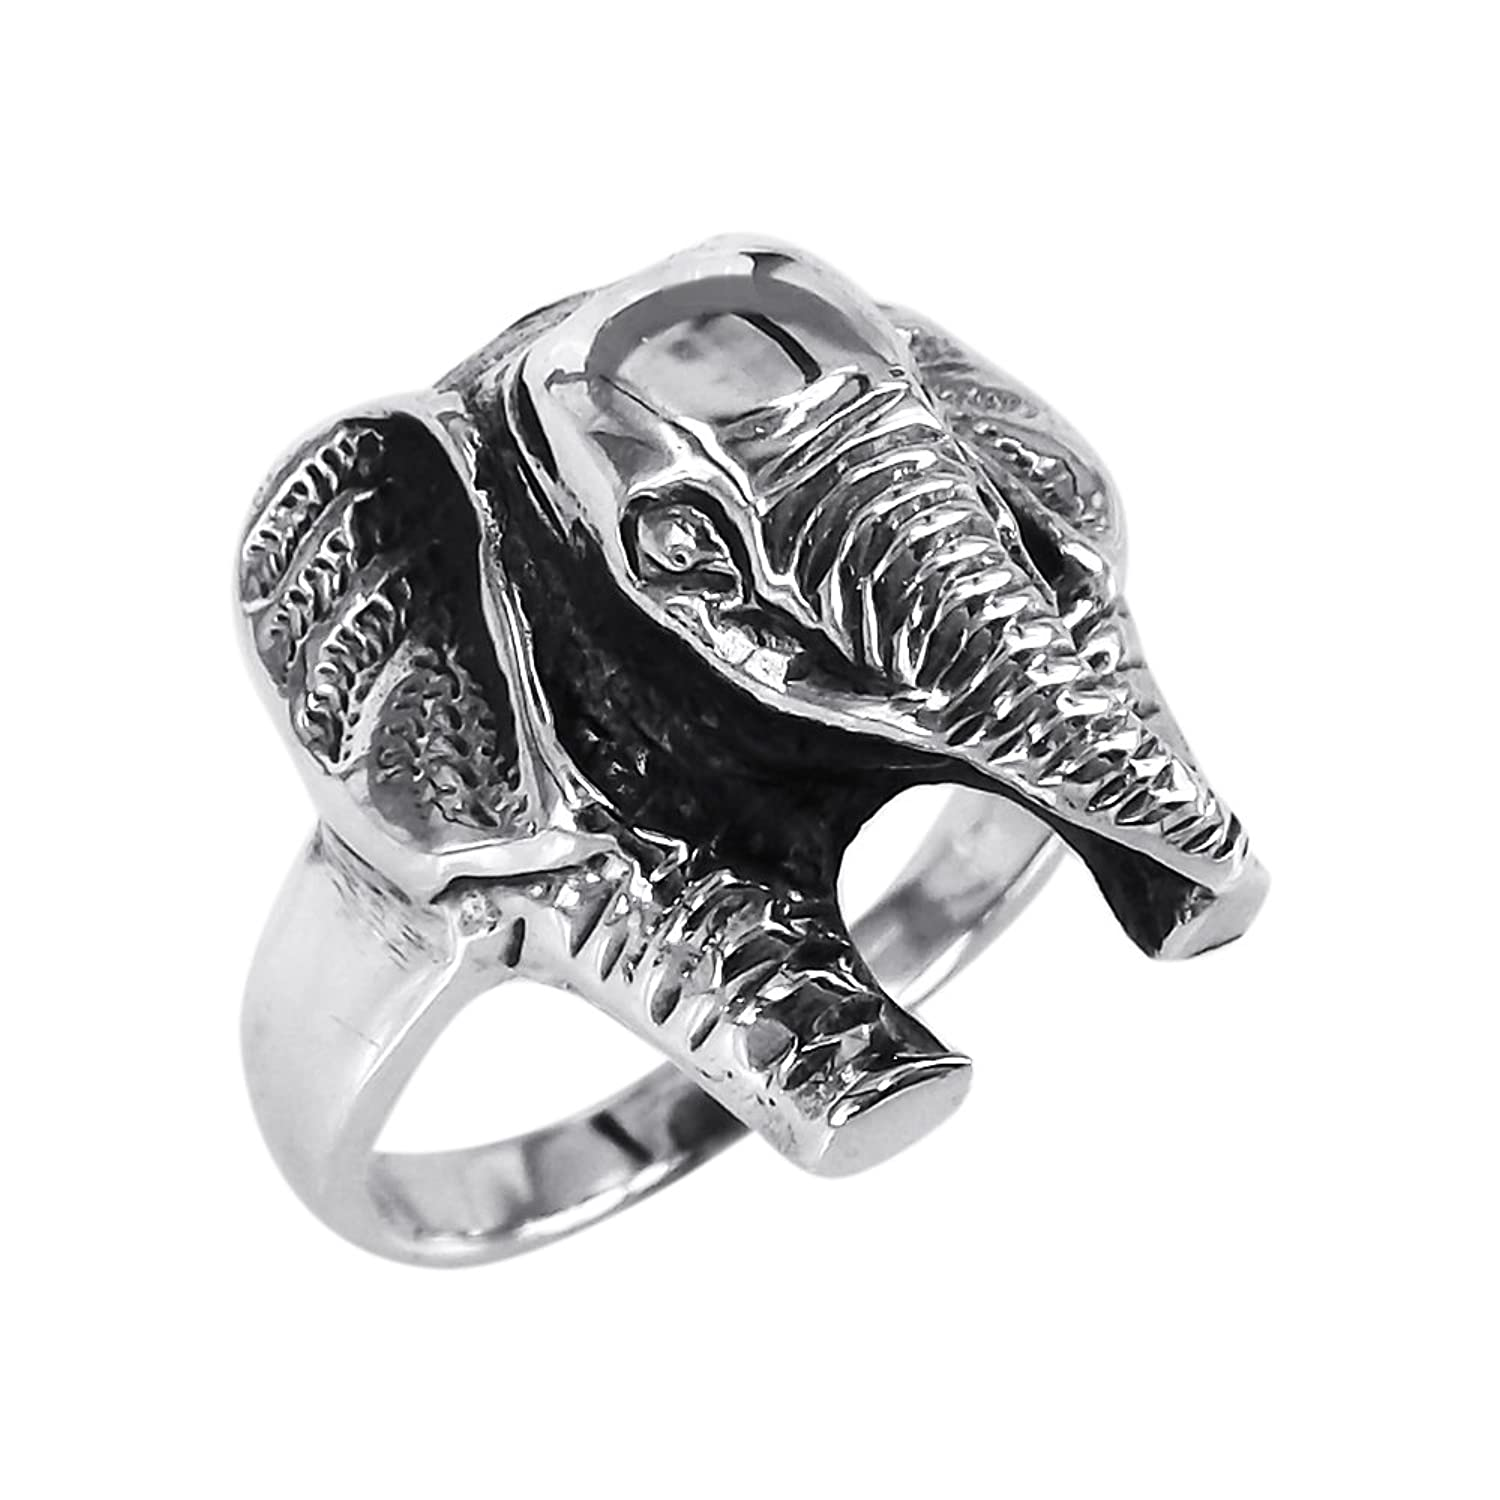 faux products zirconia ring black cubic diamond sparkles beloved clear carat hematite elephant animal meave rings silver fashion cz engagement contemporary